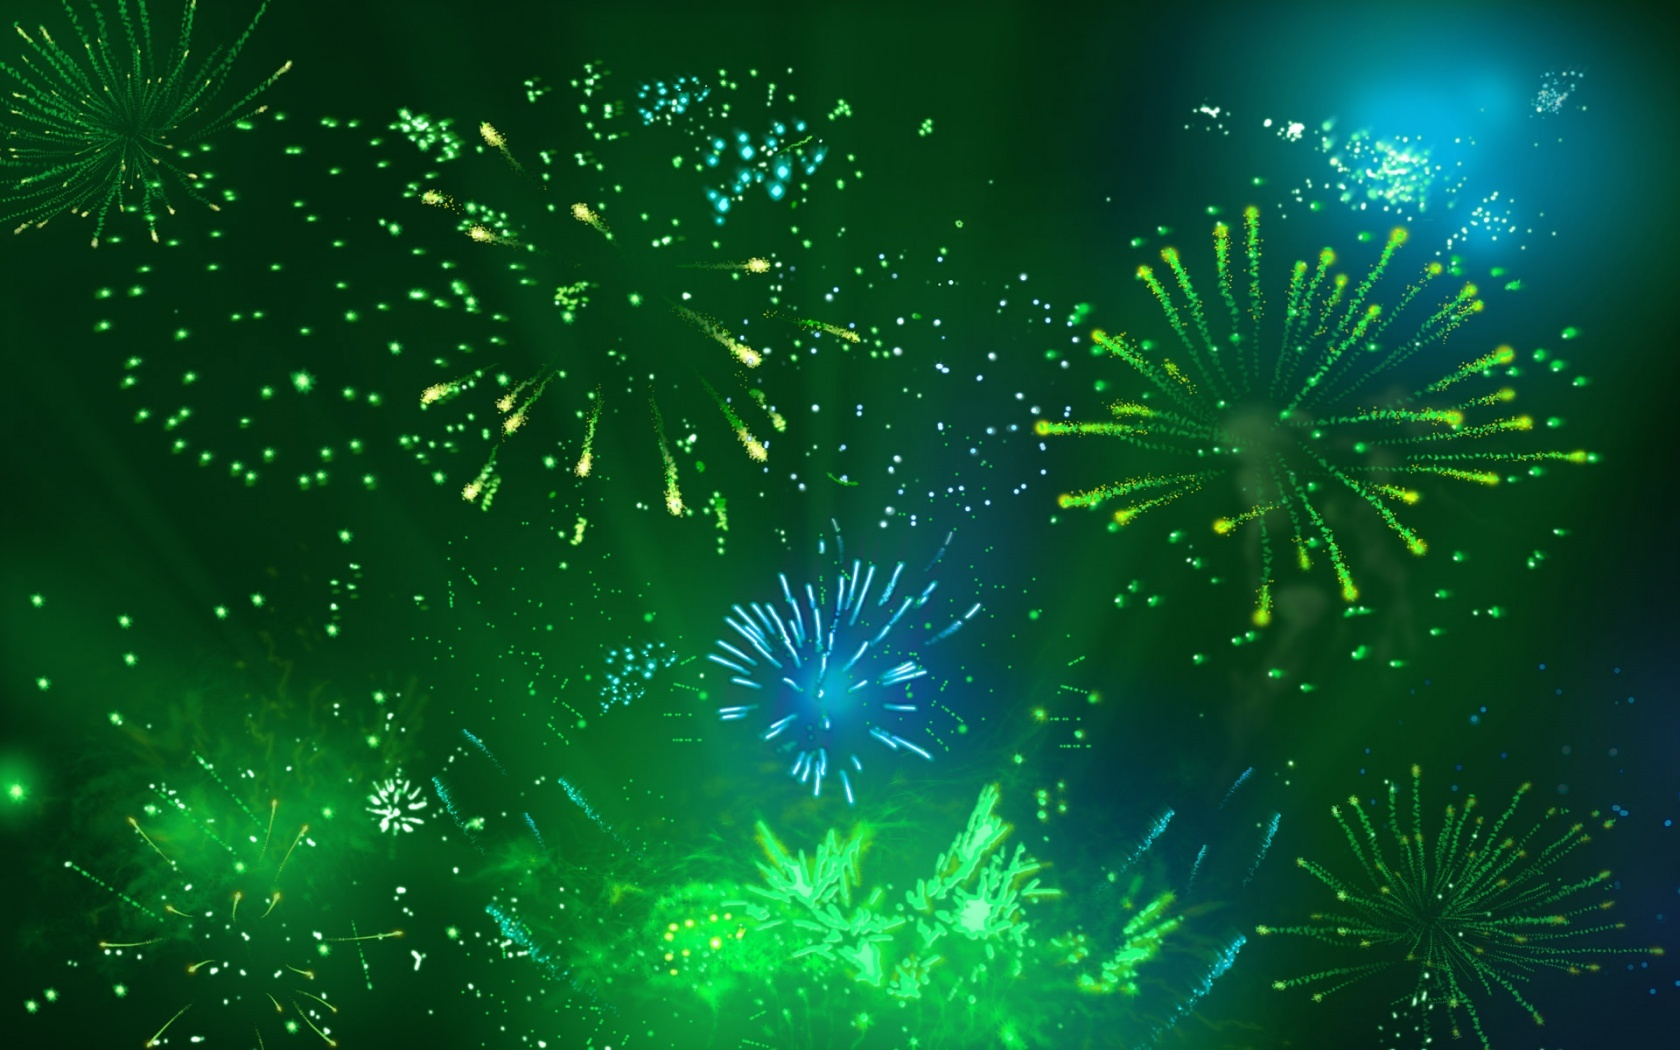 abstract wallpapers hd fireworks green